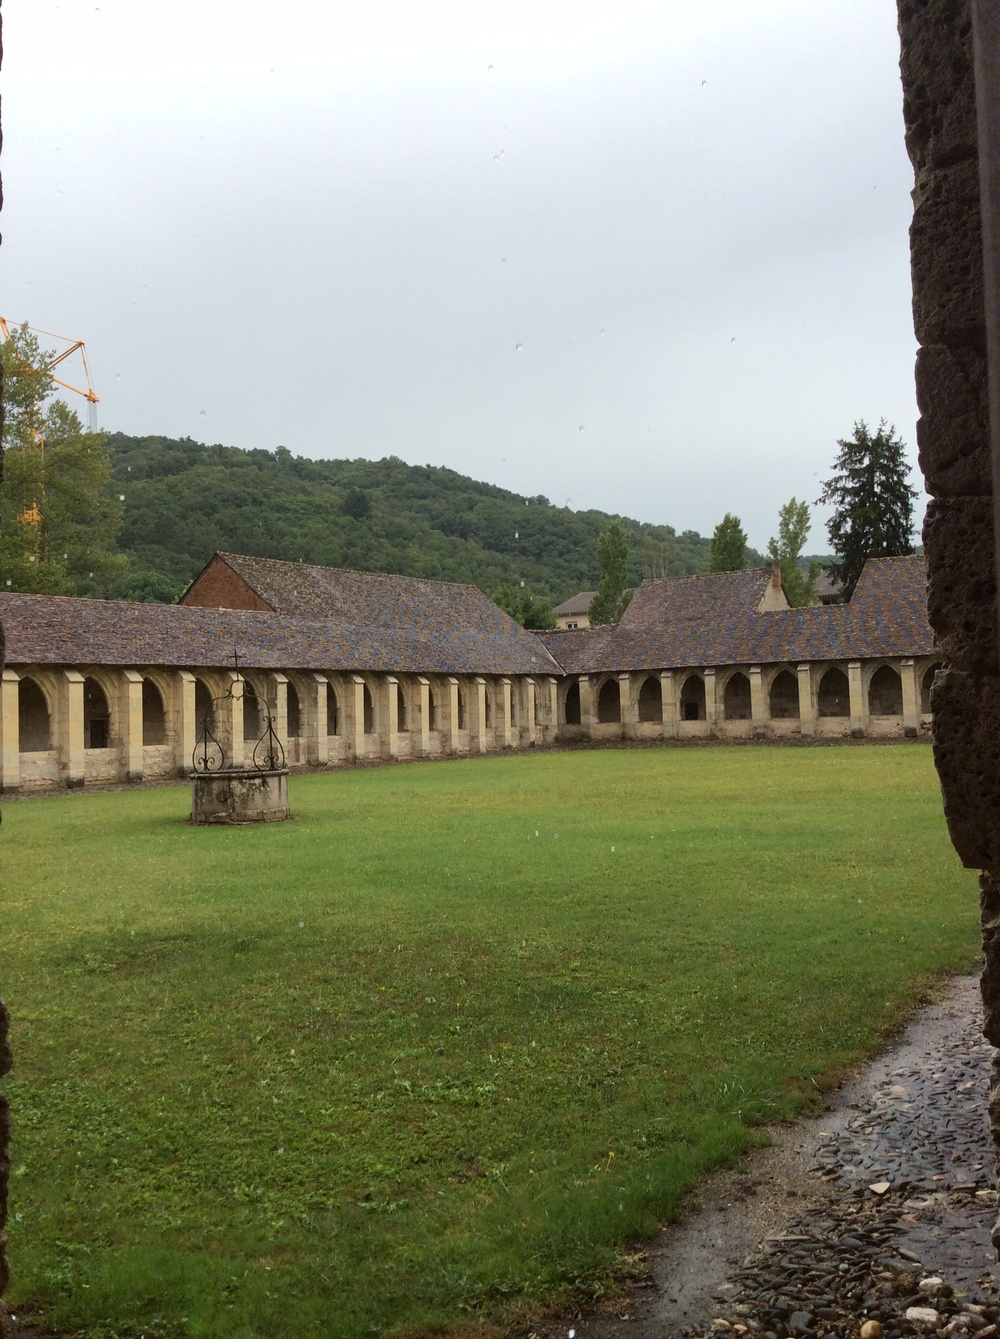 This is one view of the cloisters.